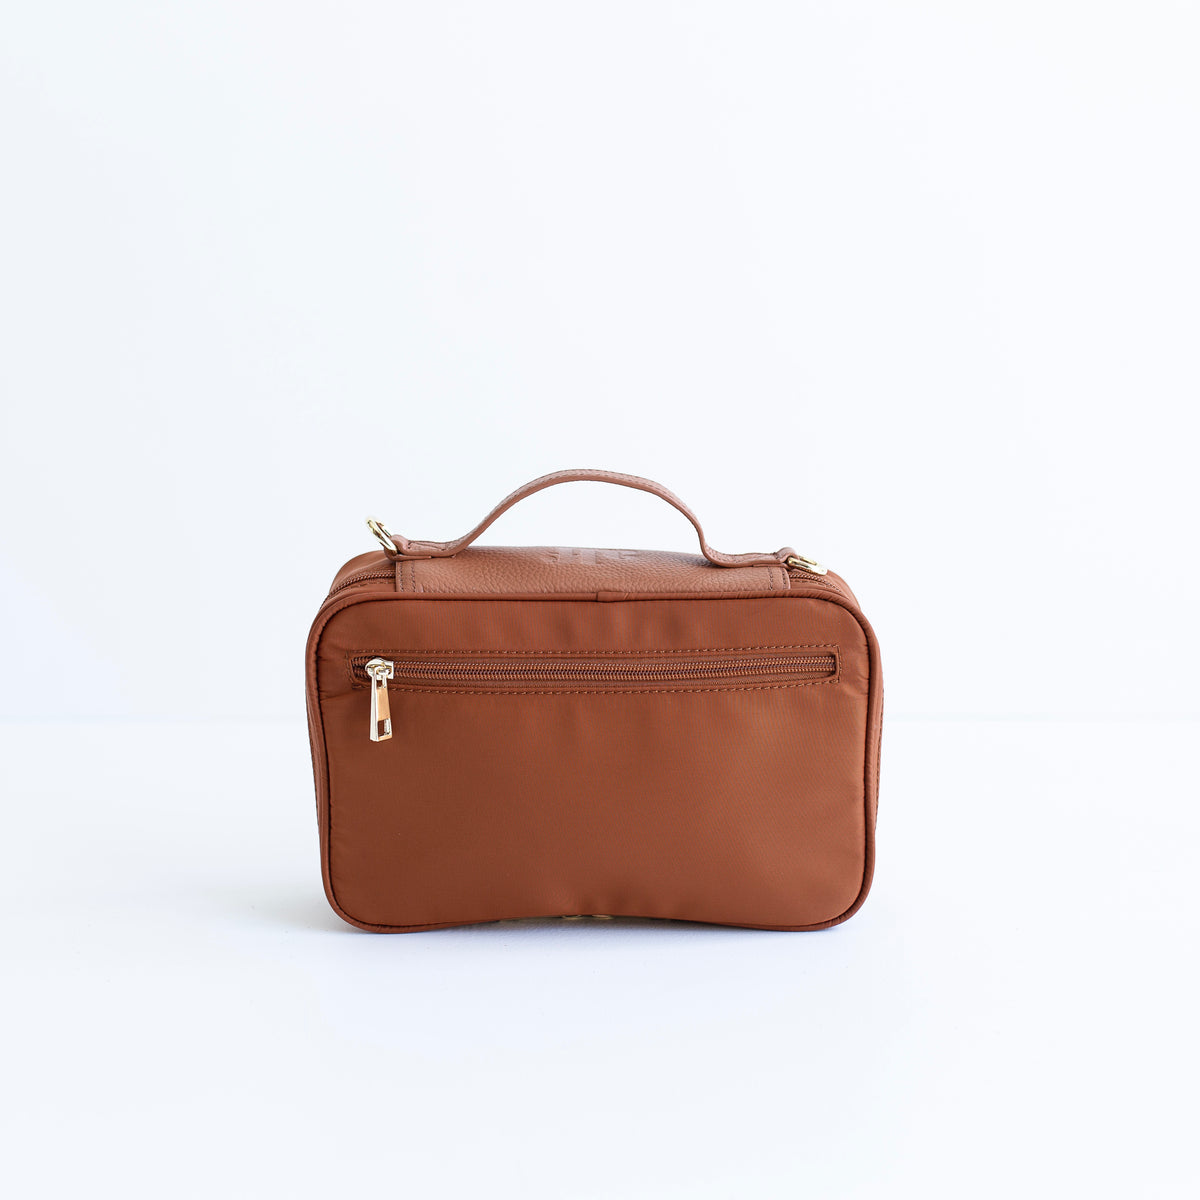 The Little Ottie Caddy - All Tan